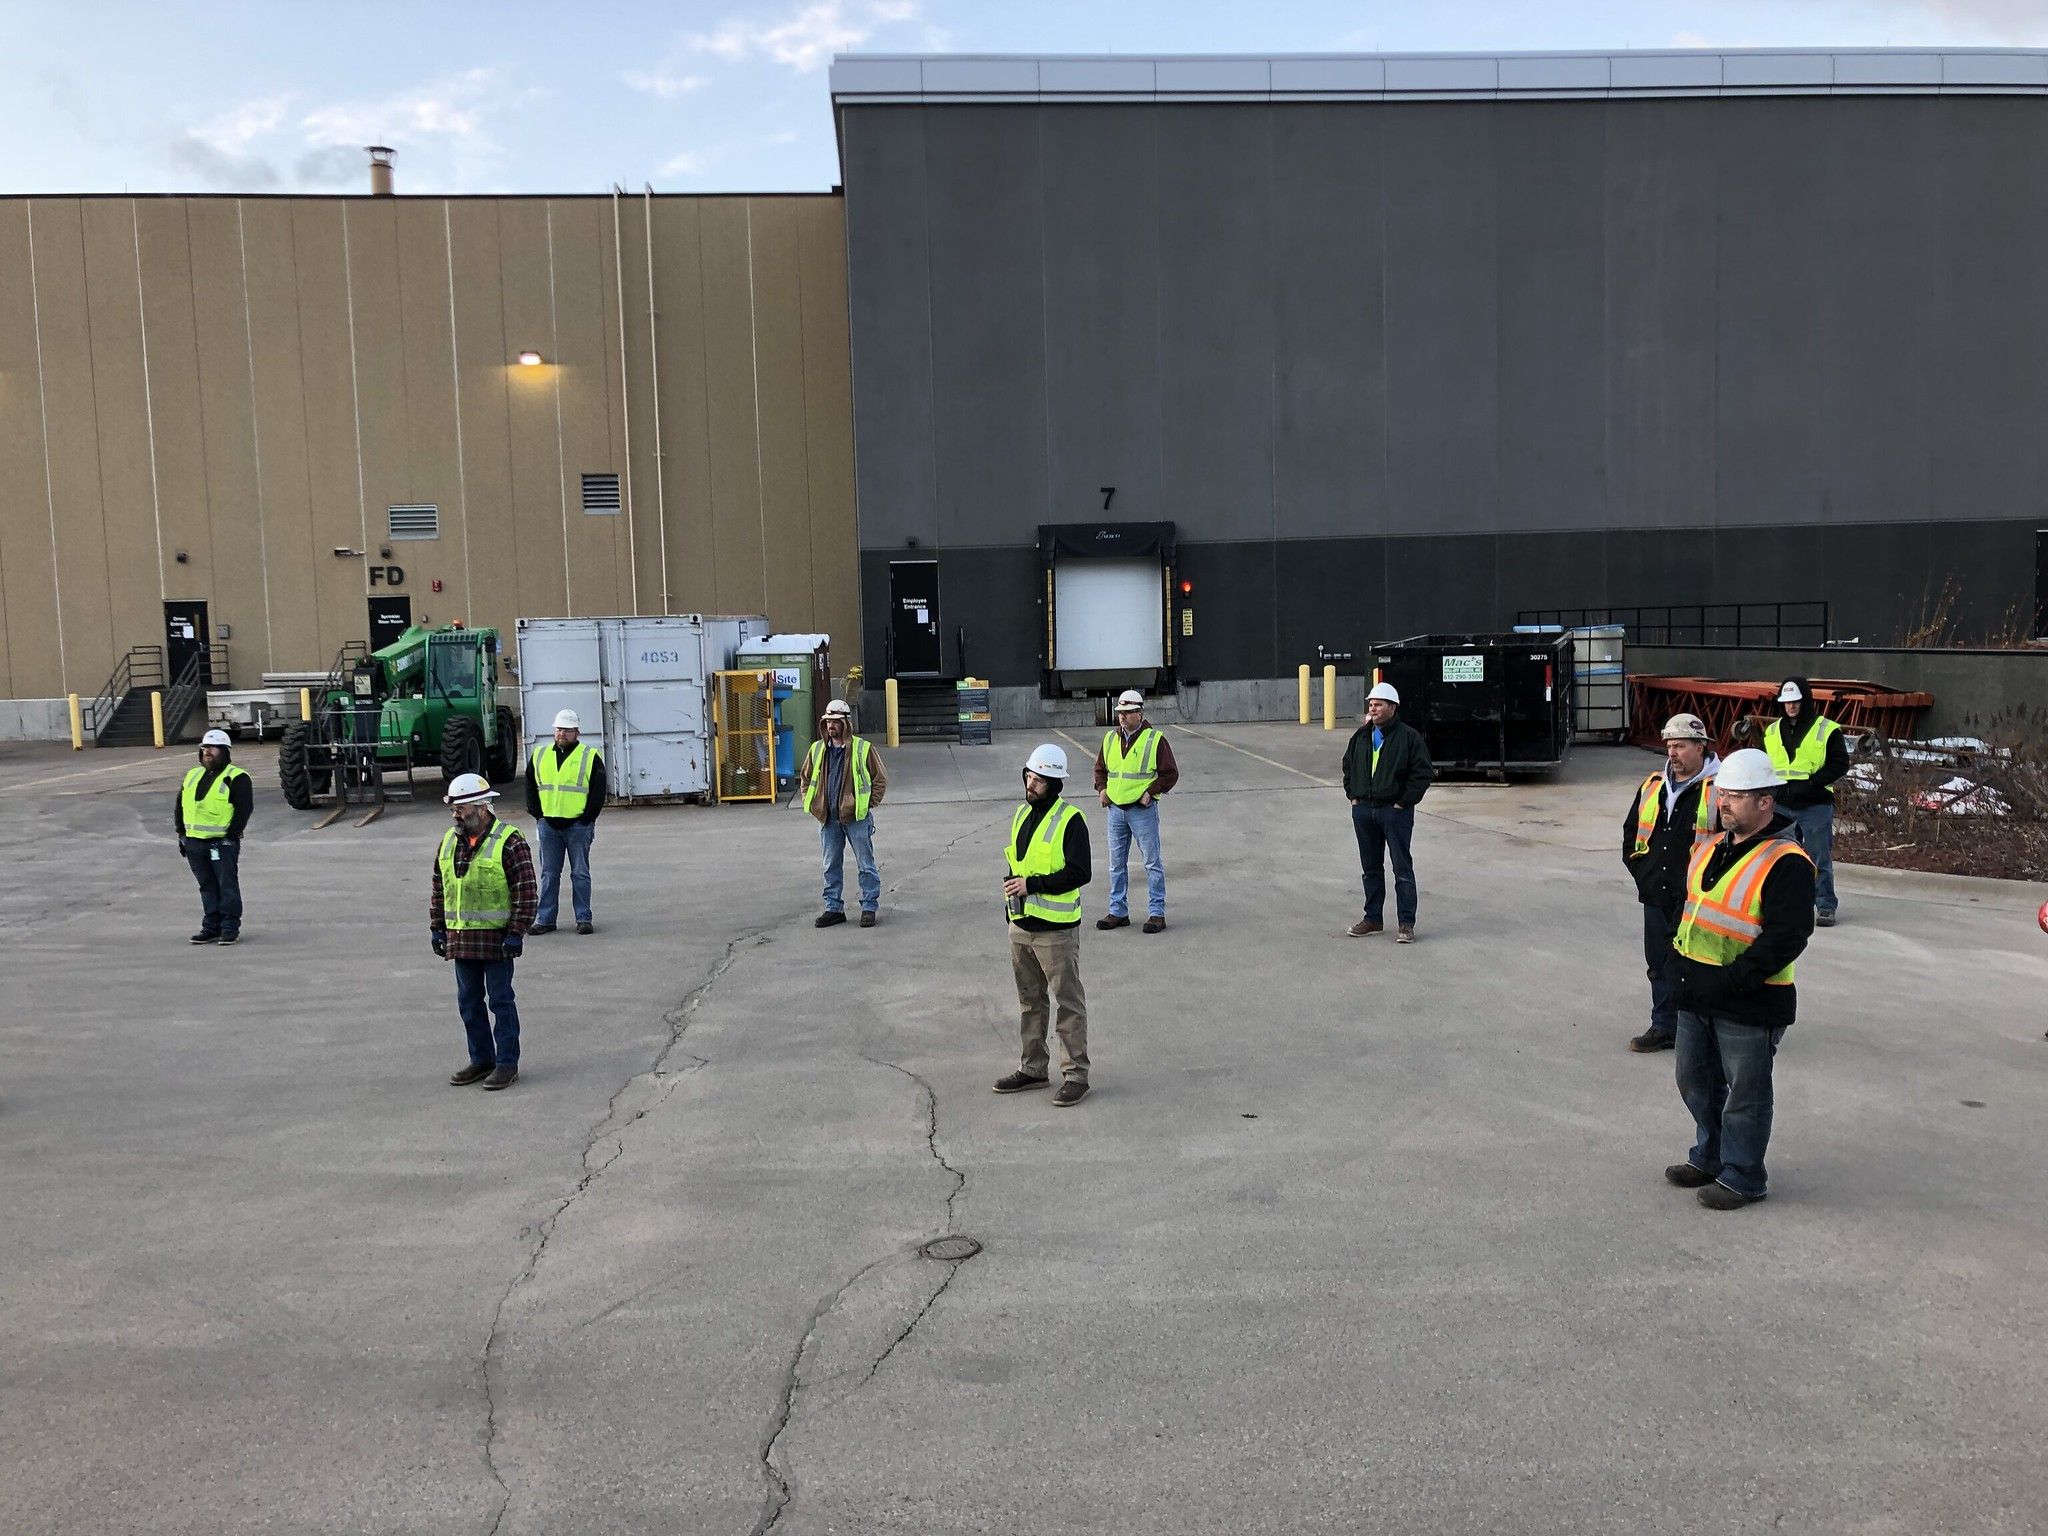 Hundreds Of Construction Firms Across The Country Hold Coronavirus Safety Stand Downs To Protect Workers And The Public